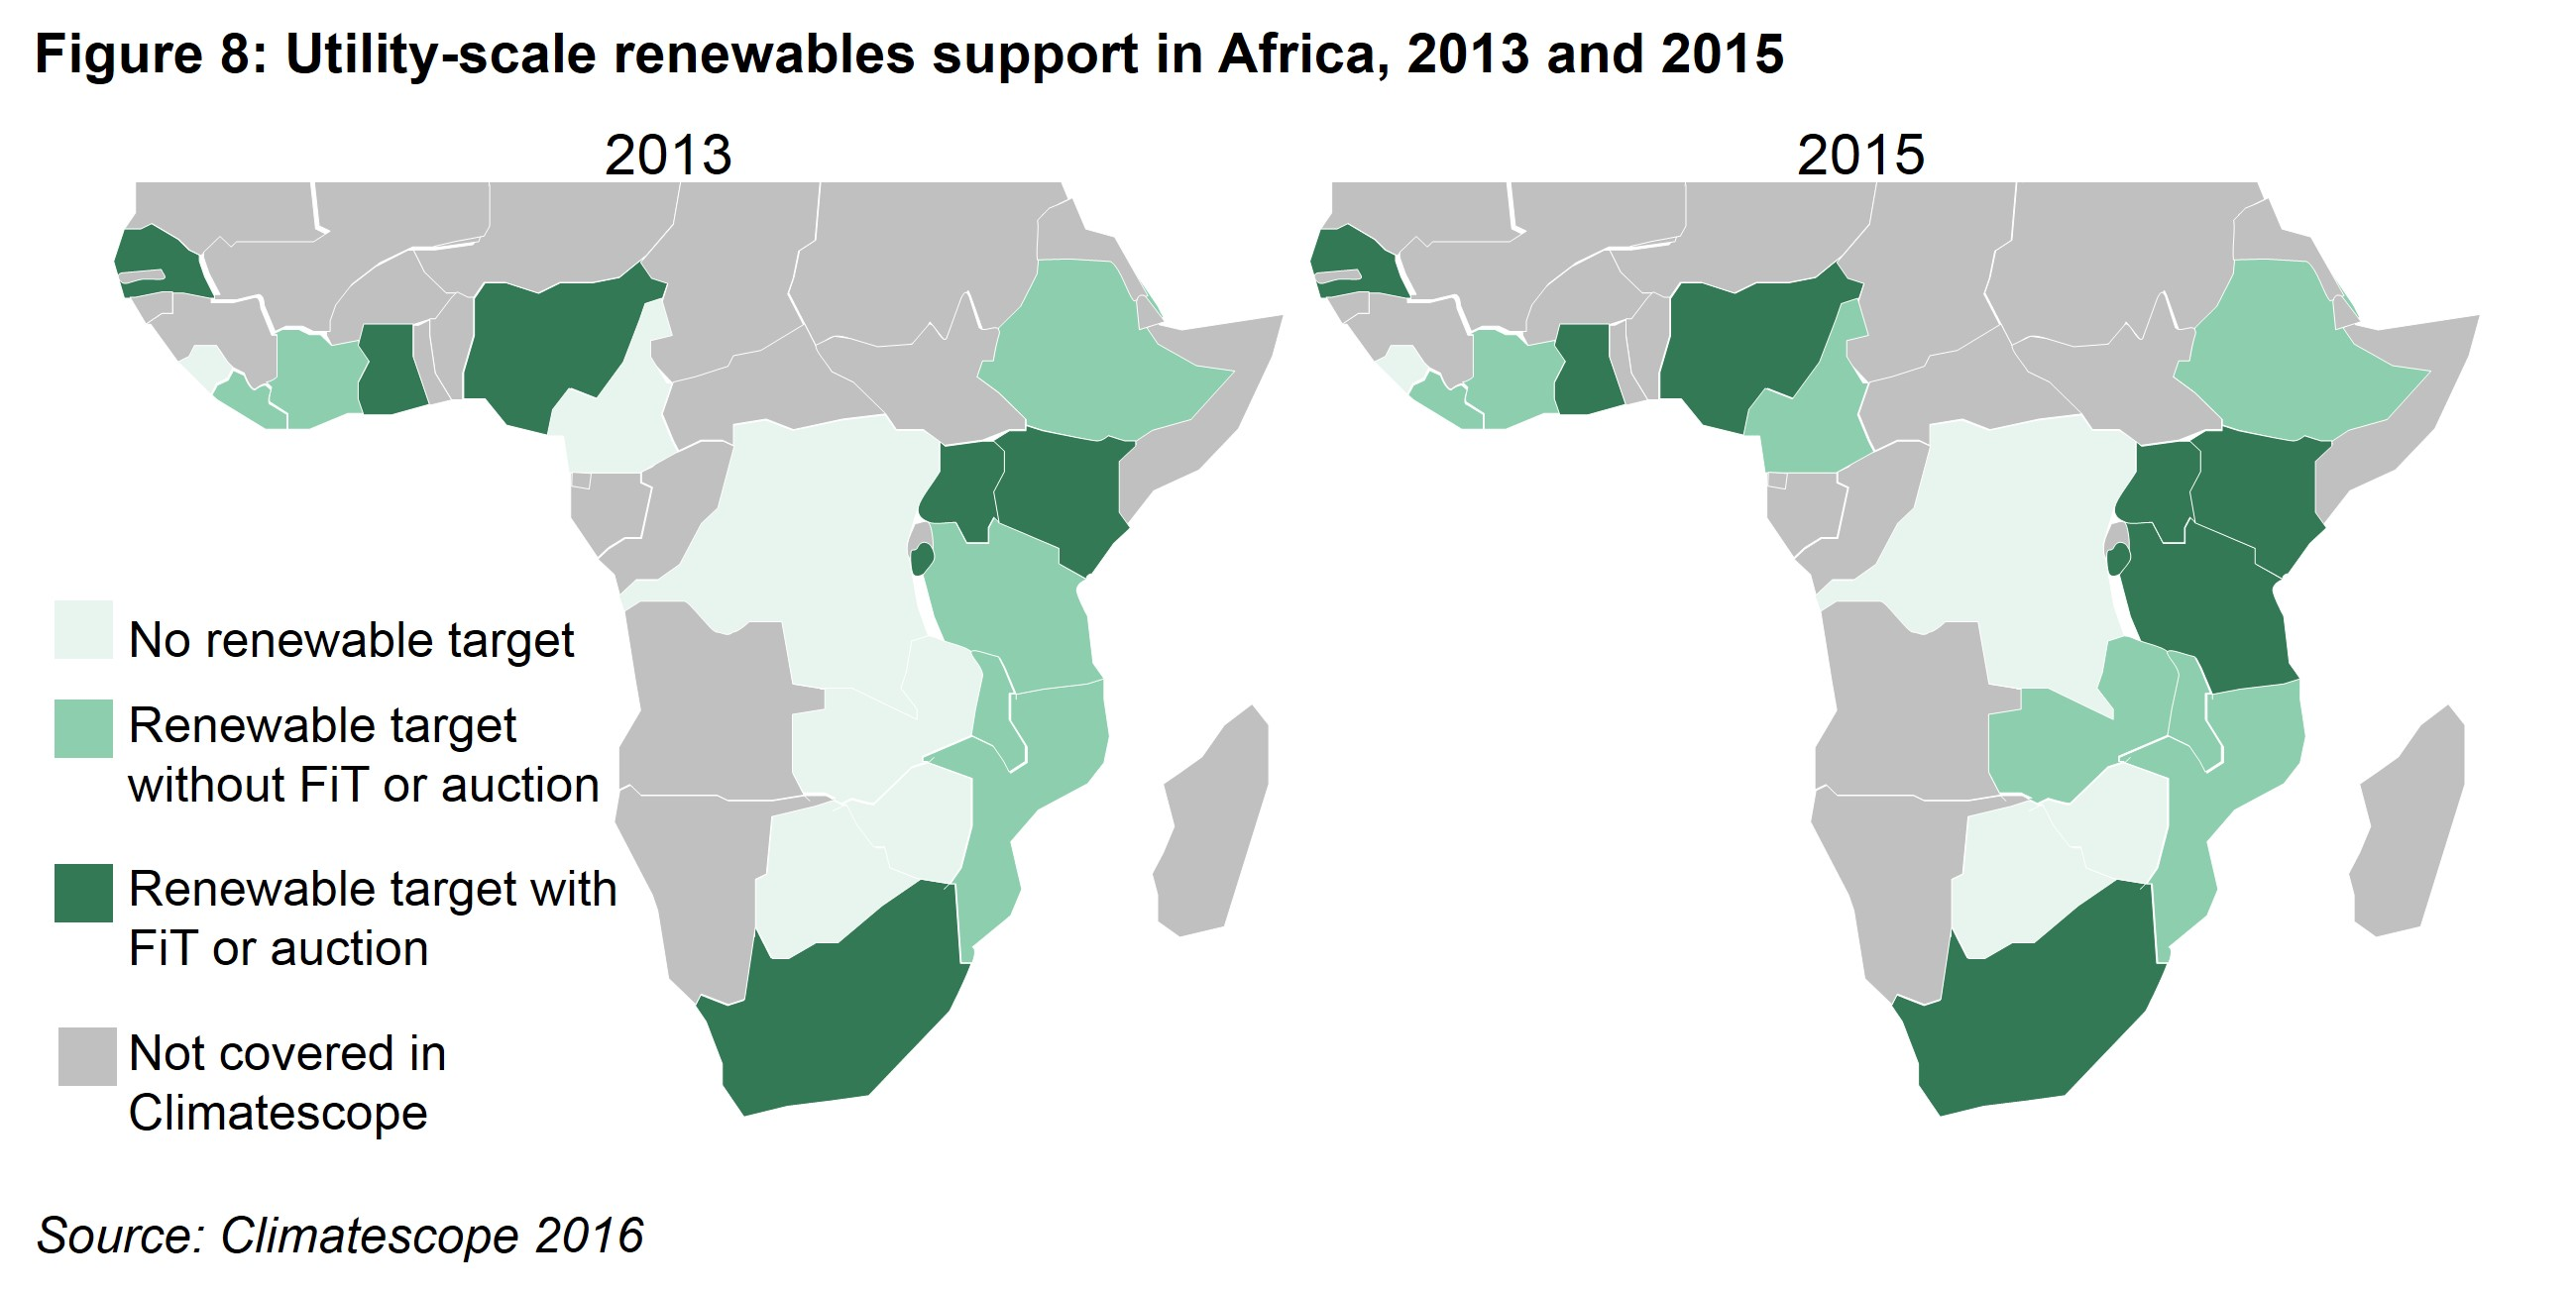 AM Fig 8 - Utility-scale renewables support in Africa, 2013